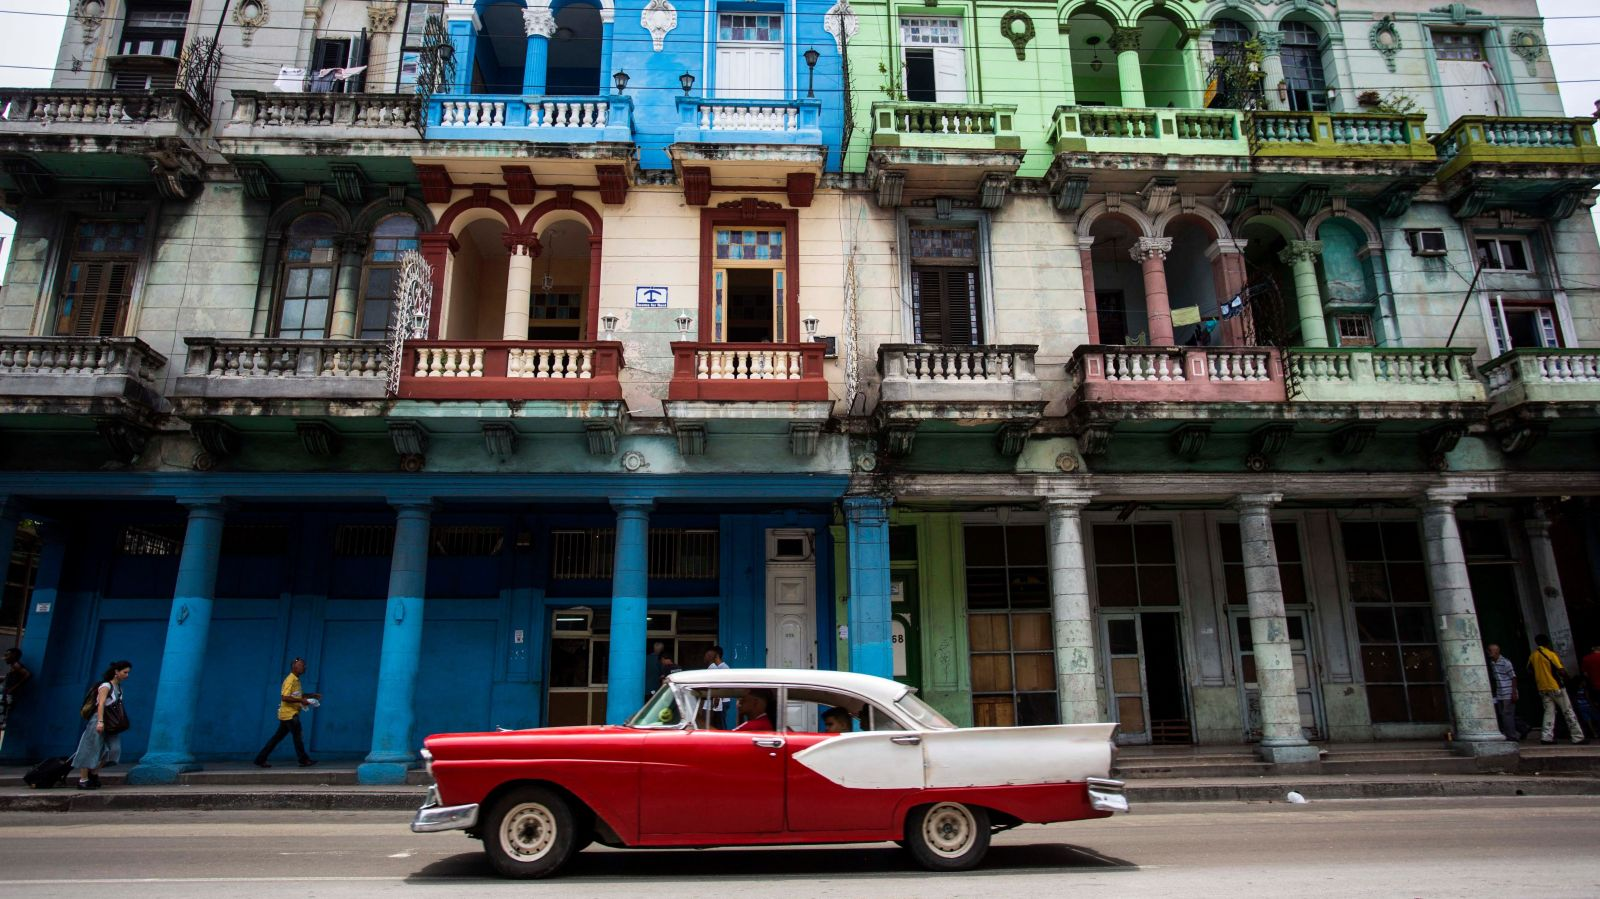 Cuba will recognize private property in its new constitution